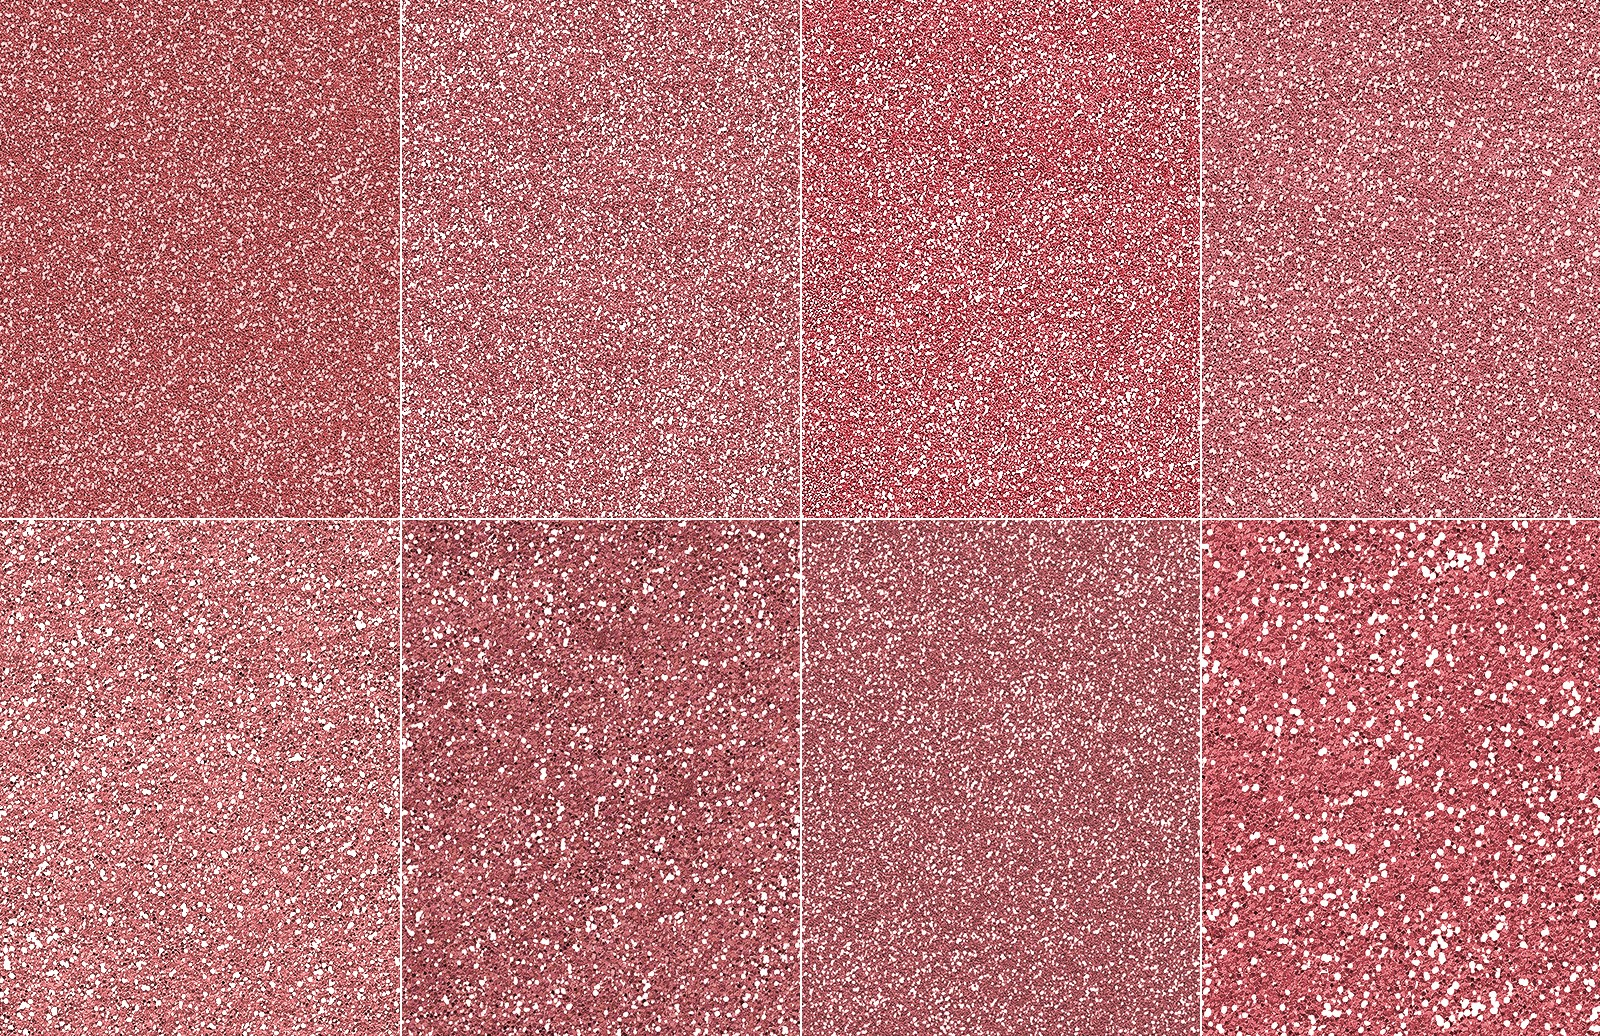 Seamless  Glitter  Textures  Preview 3